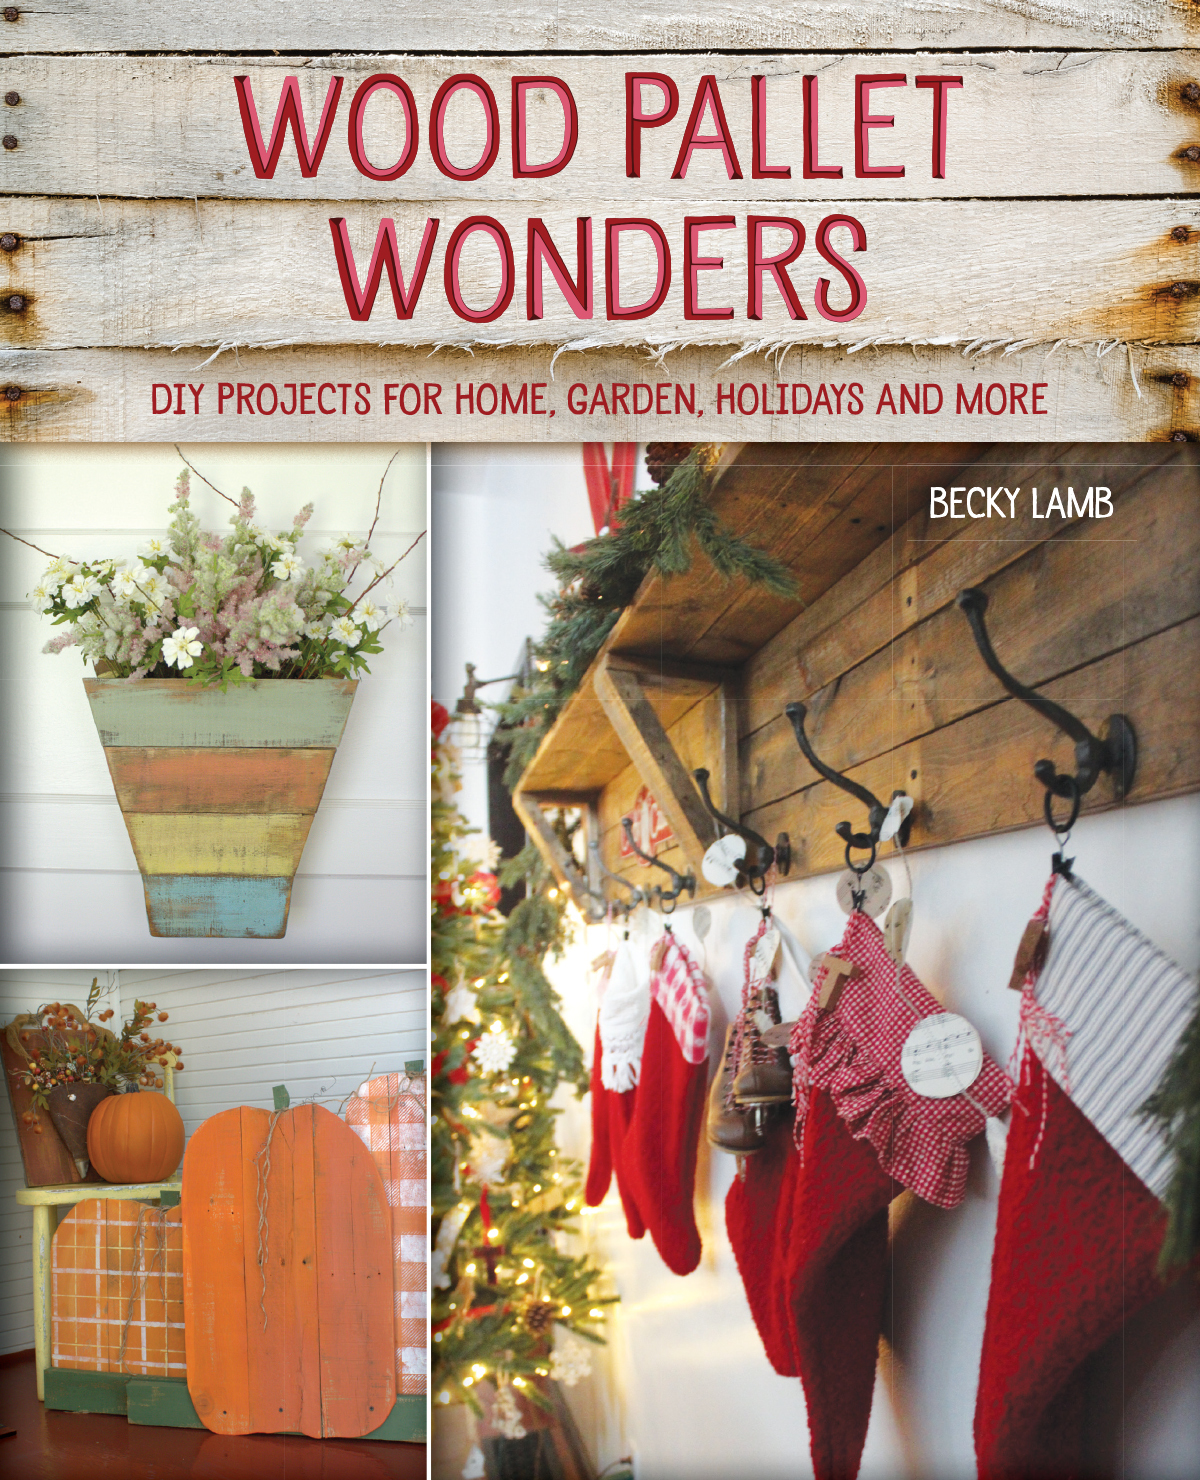 Wood Pallet Wonders - Becky Lamb